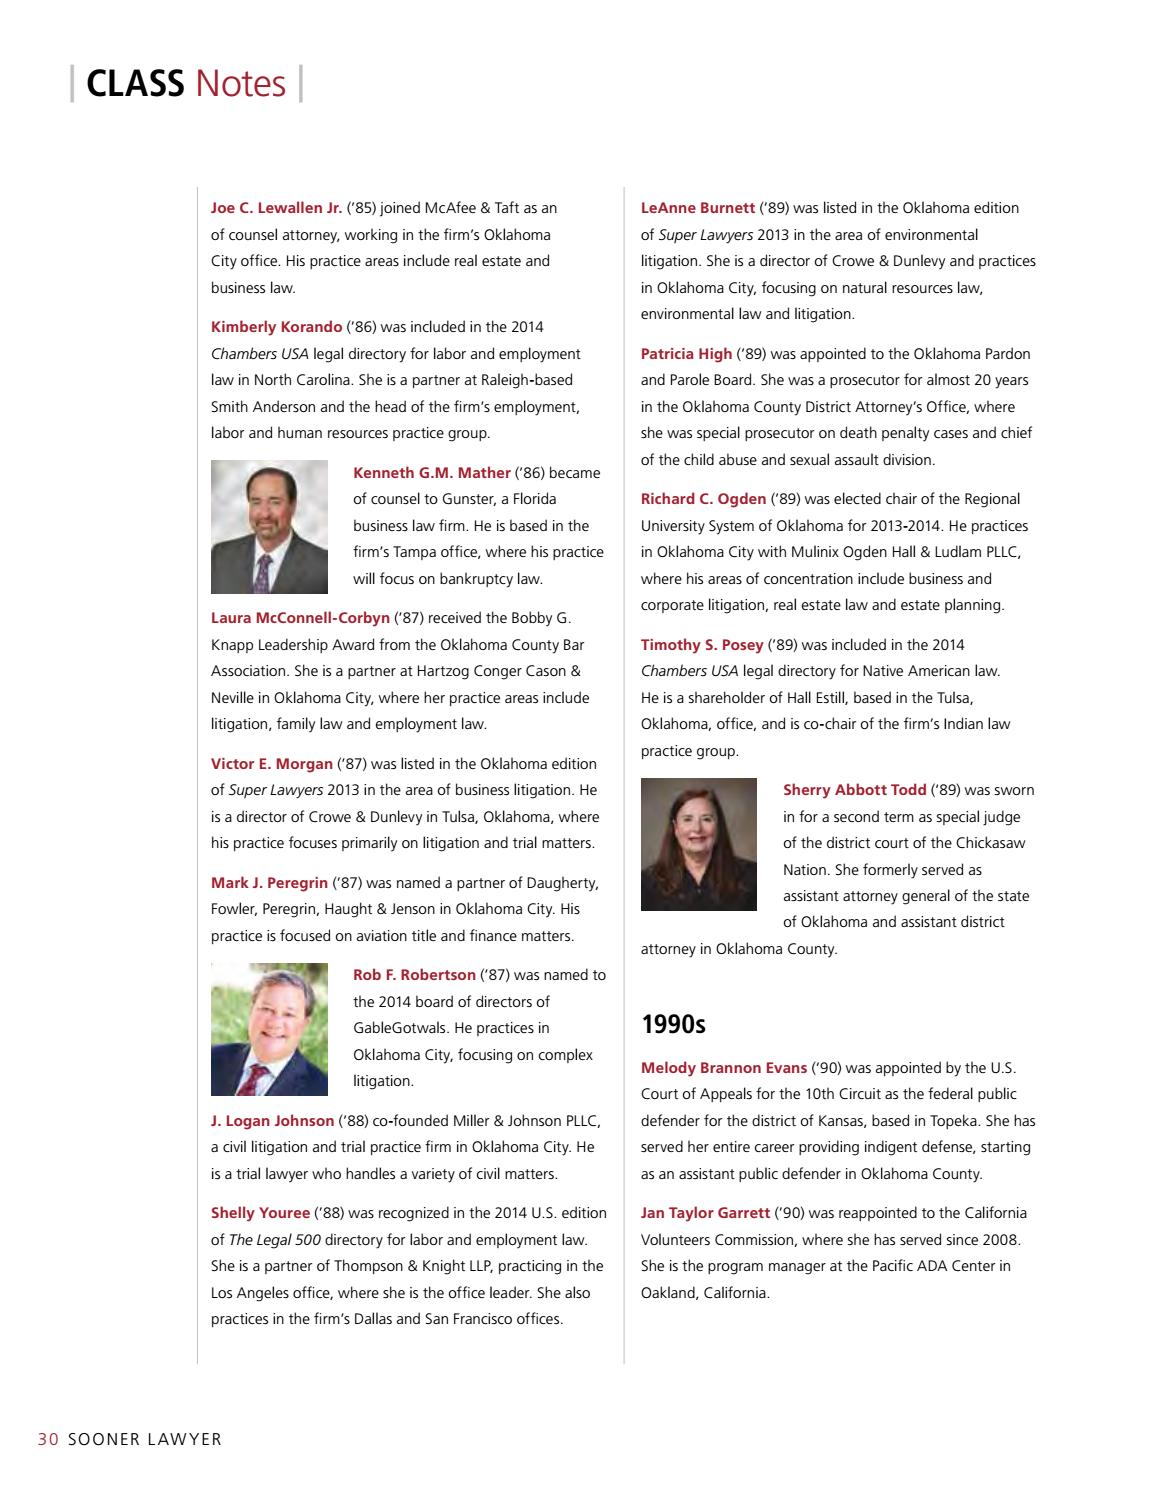 Sooner Lawyer: Fall 2014 by University of Oklahoma College of Law